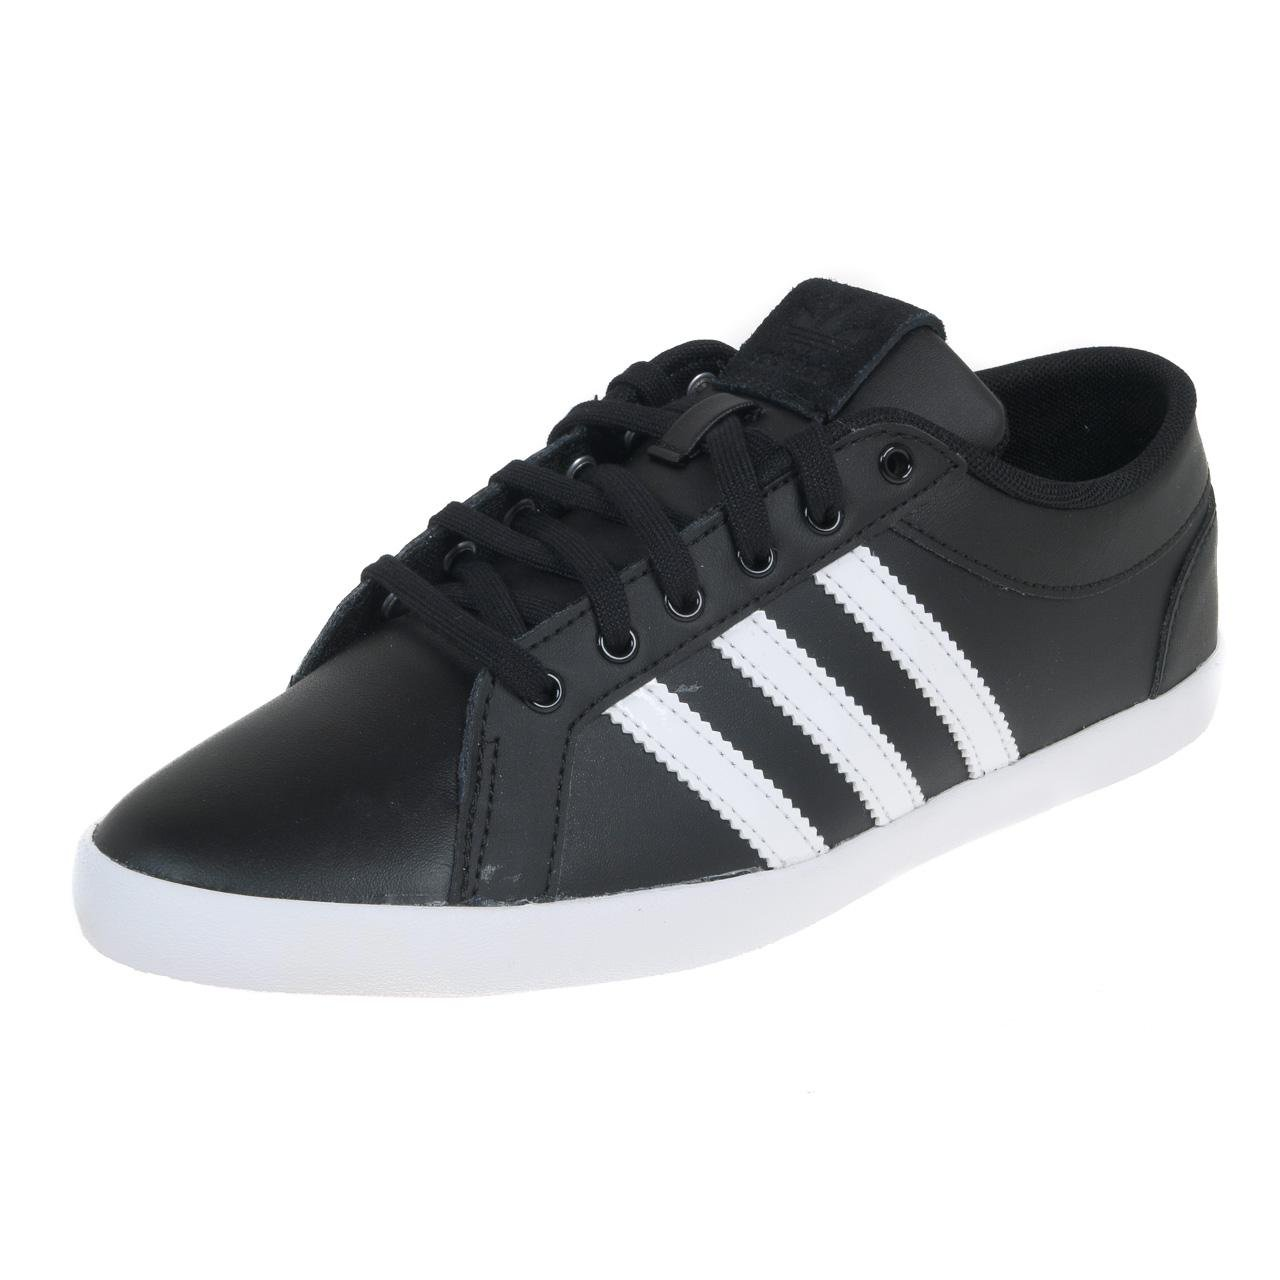 Adria FemmeChaussures Ps 3sSneakers Basses Adidas Et Sacs E9W2DHIY